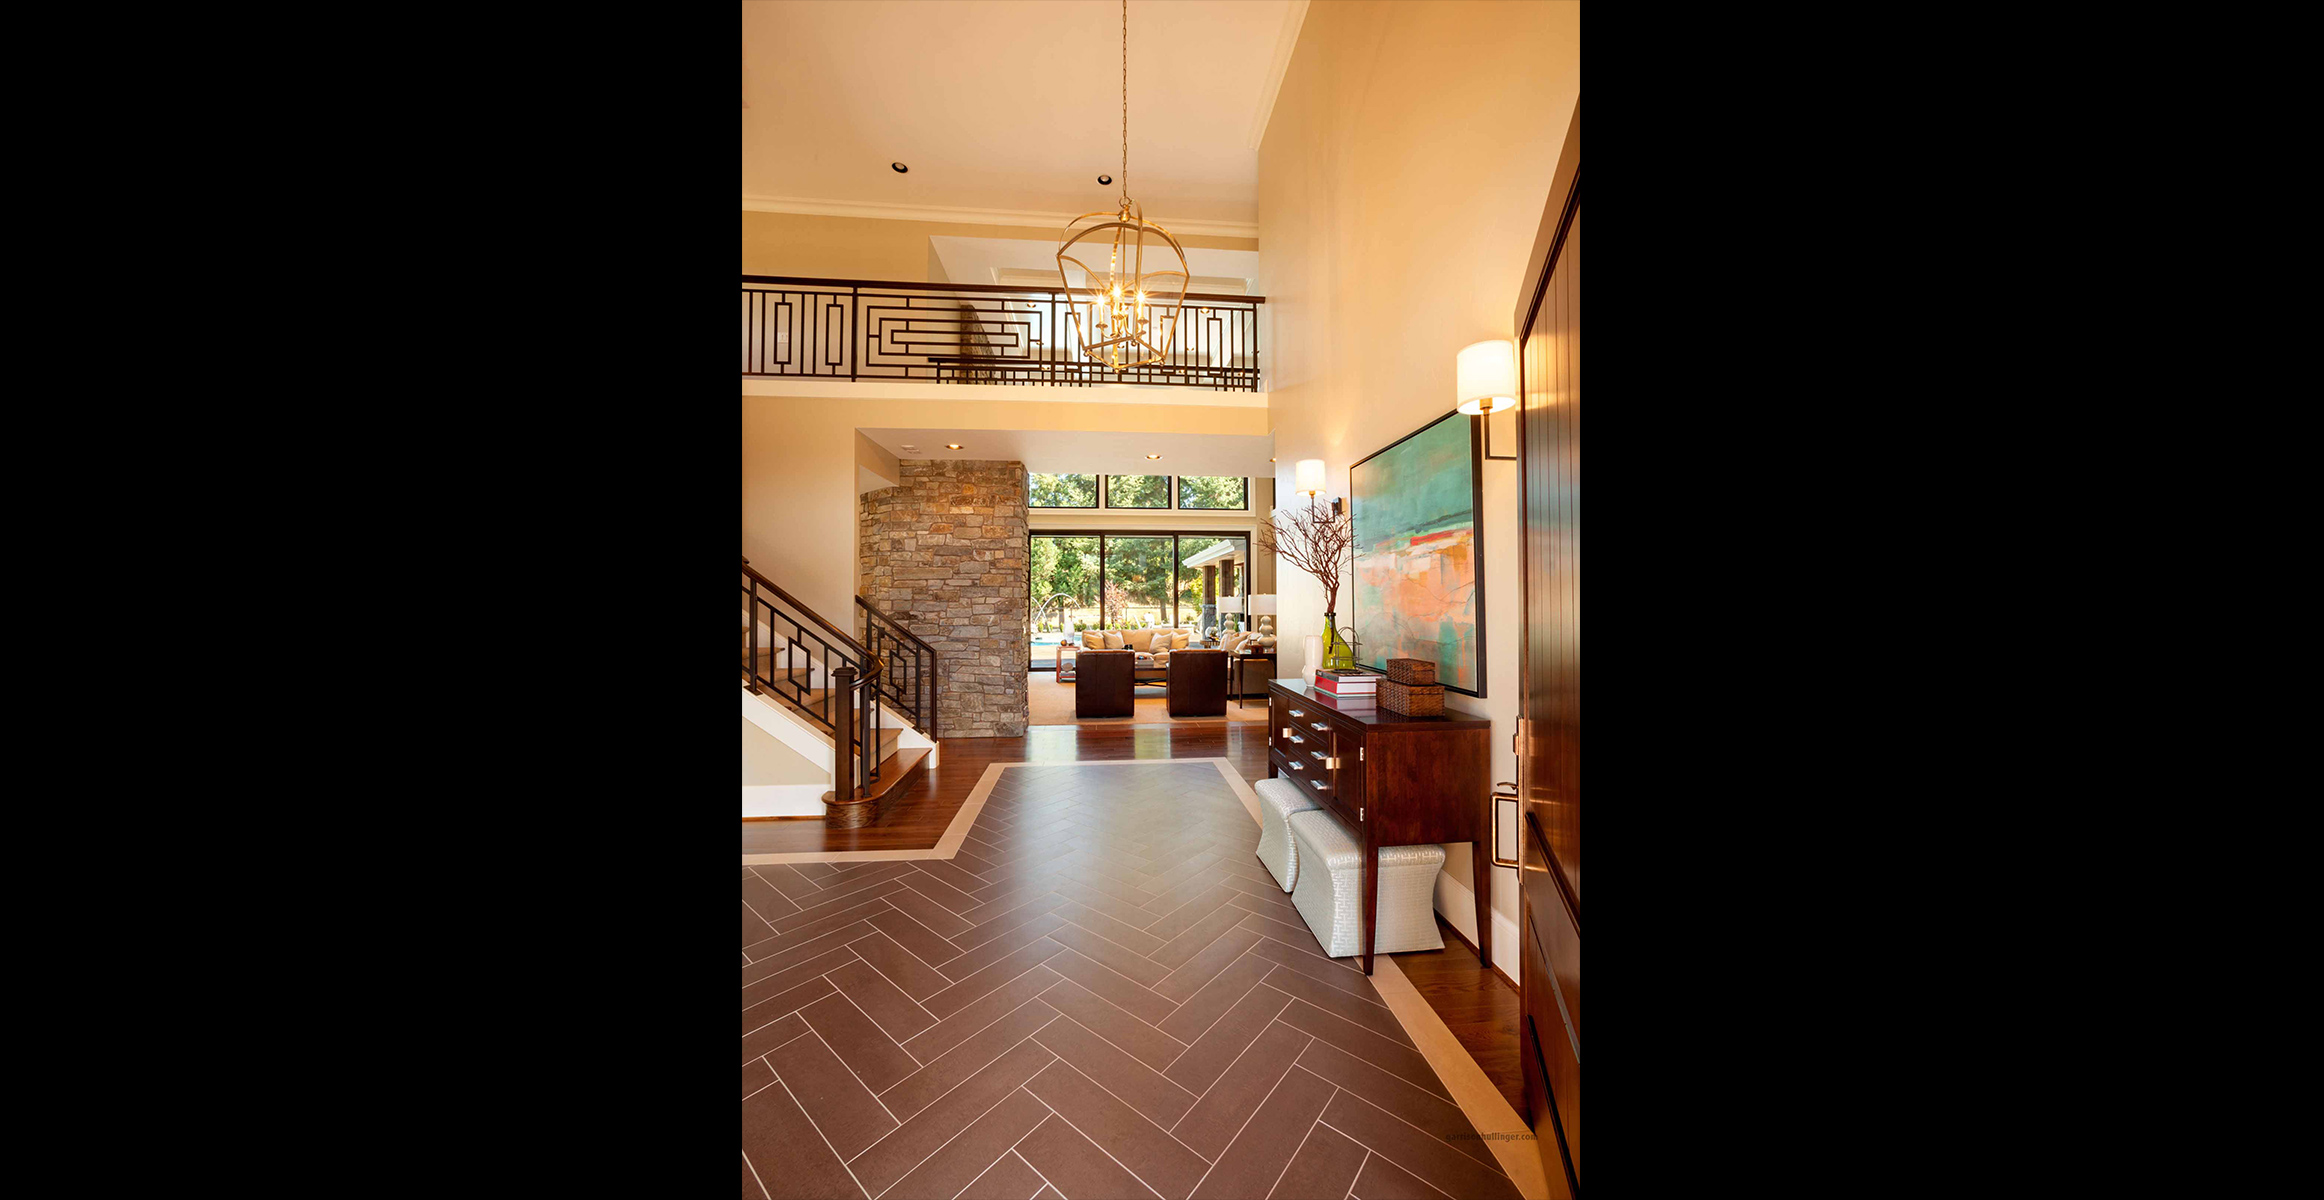 The homes entrance leads you into the warmth of the living area design